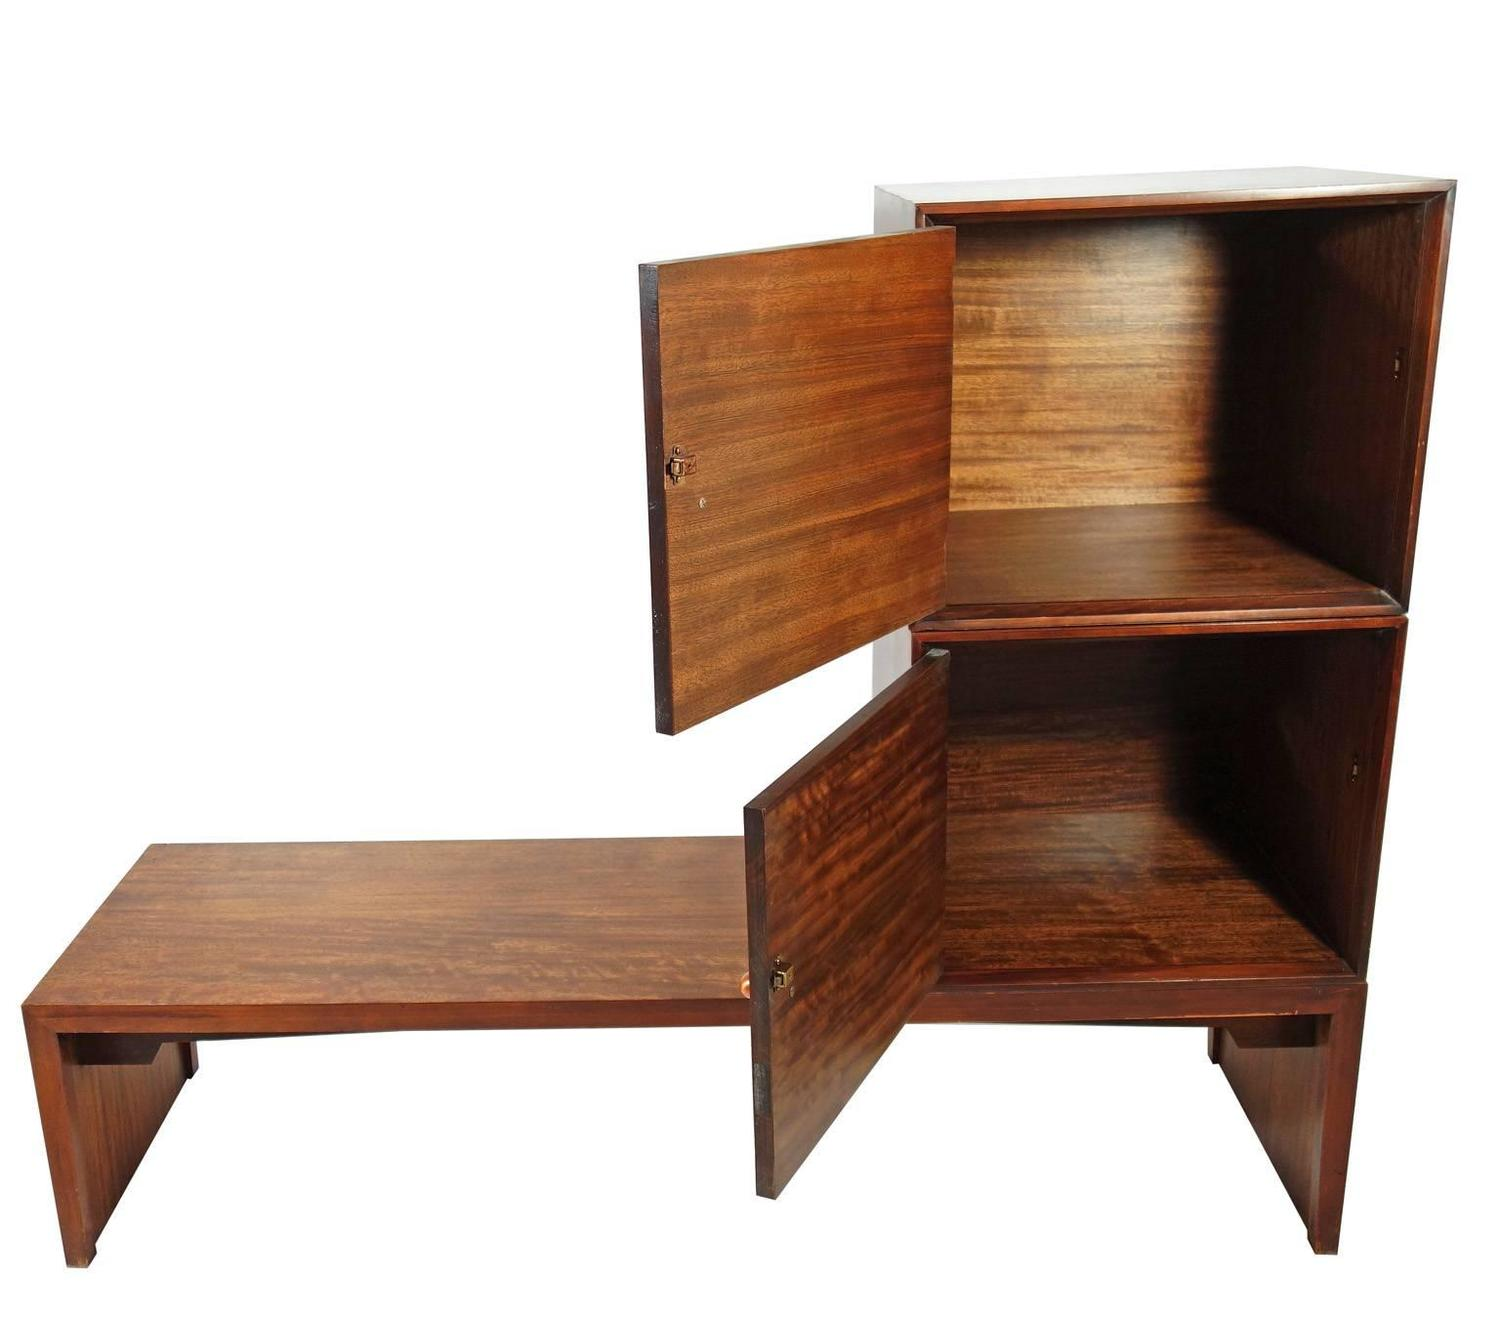 Bench And Two Storage Cubes By Milo Baughman Perspective Line For Drexel For Sale At 1stdibs